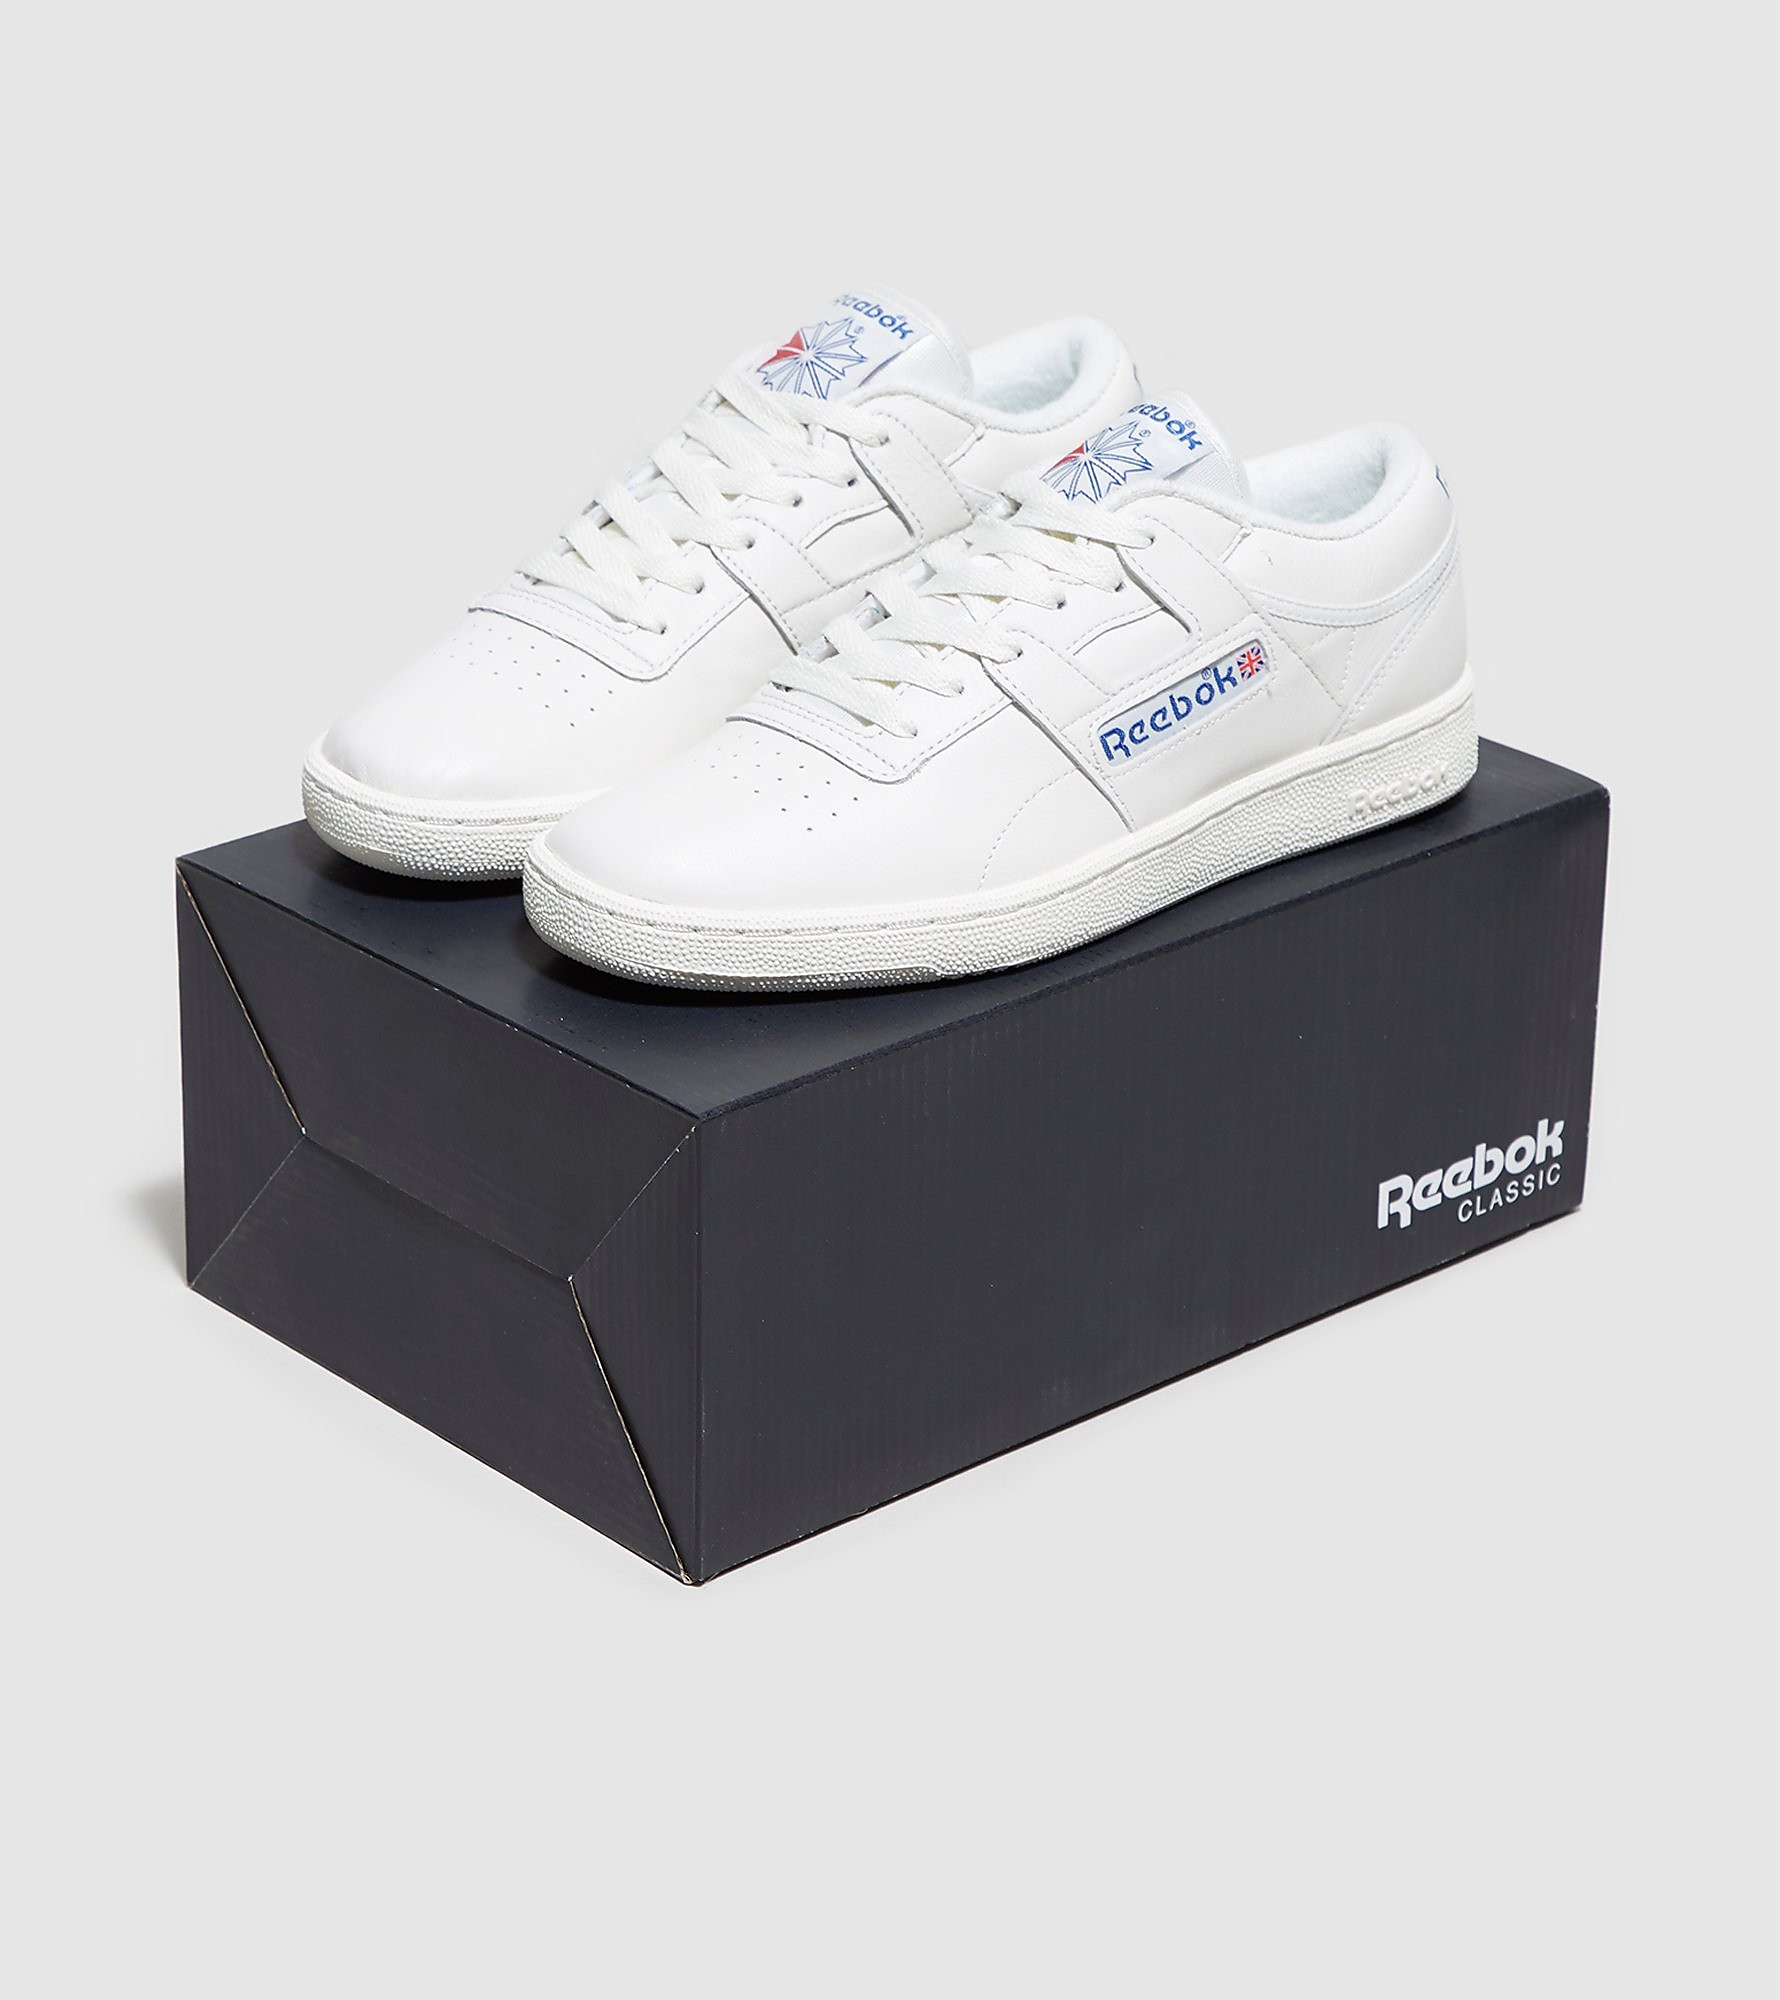 Reebok Club Workout - size? Exclusive